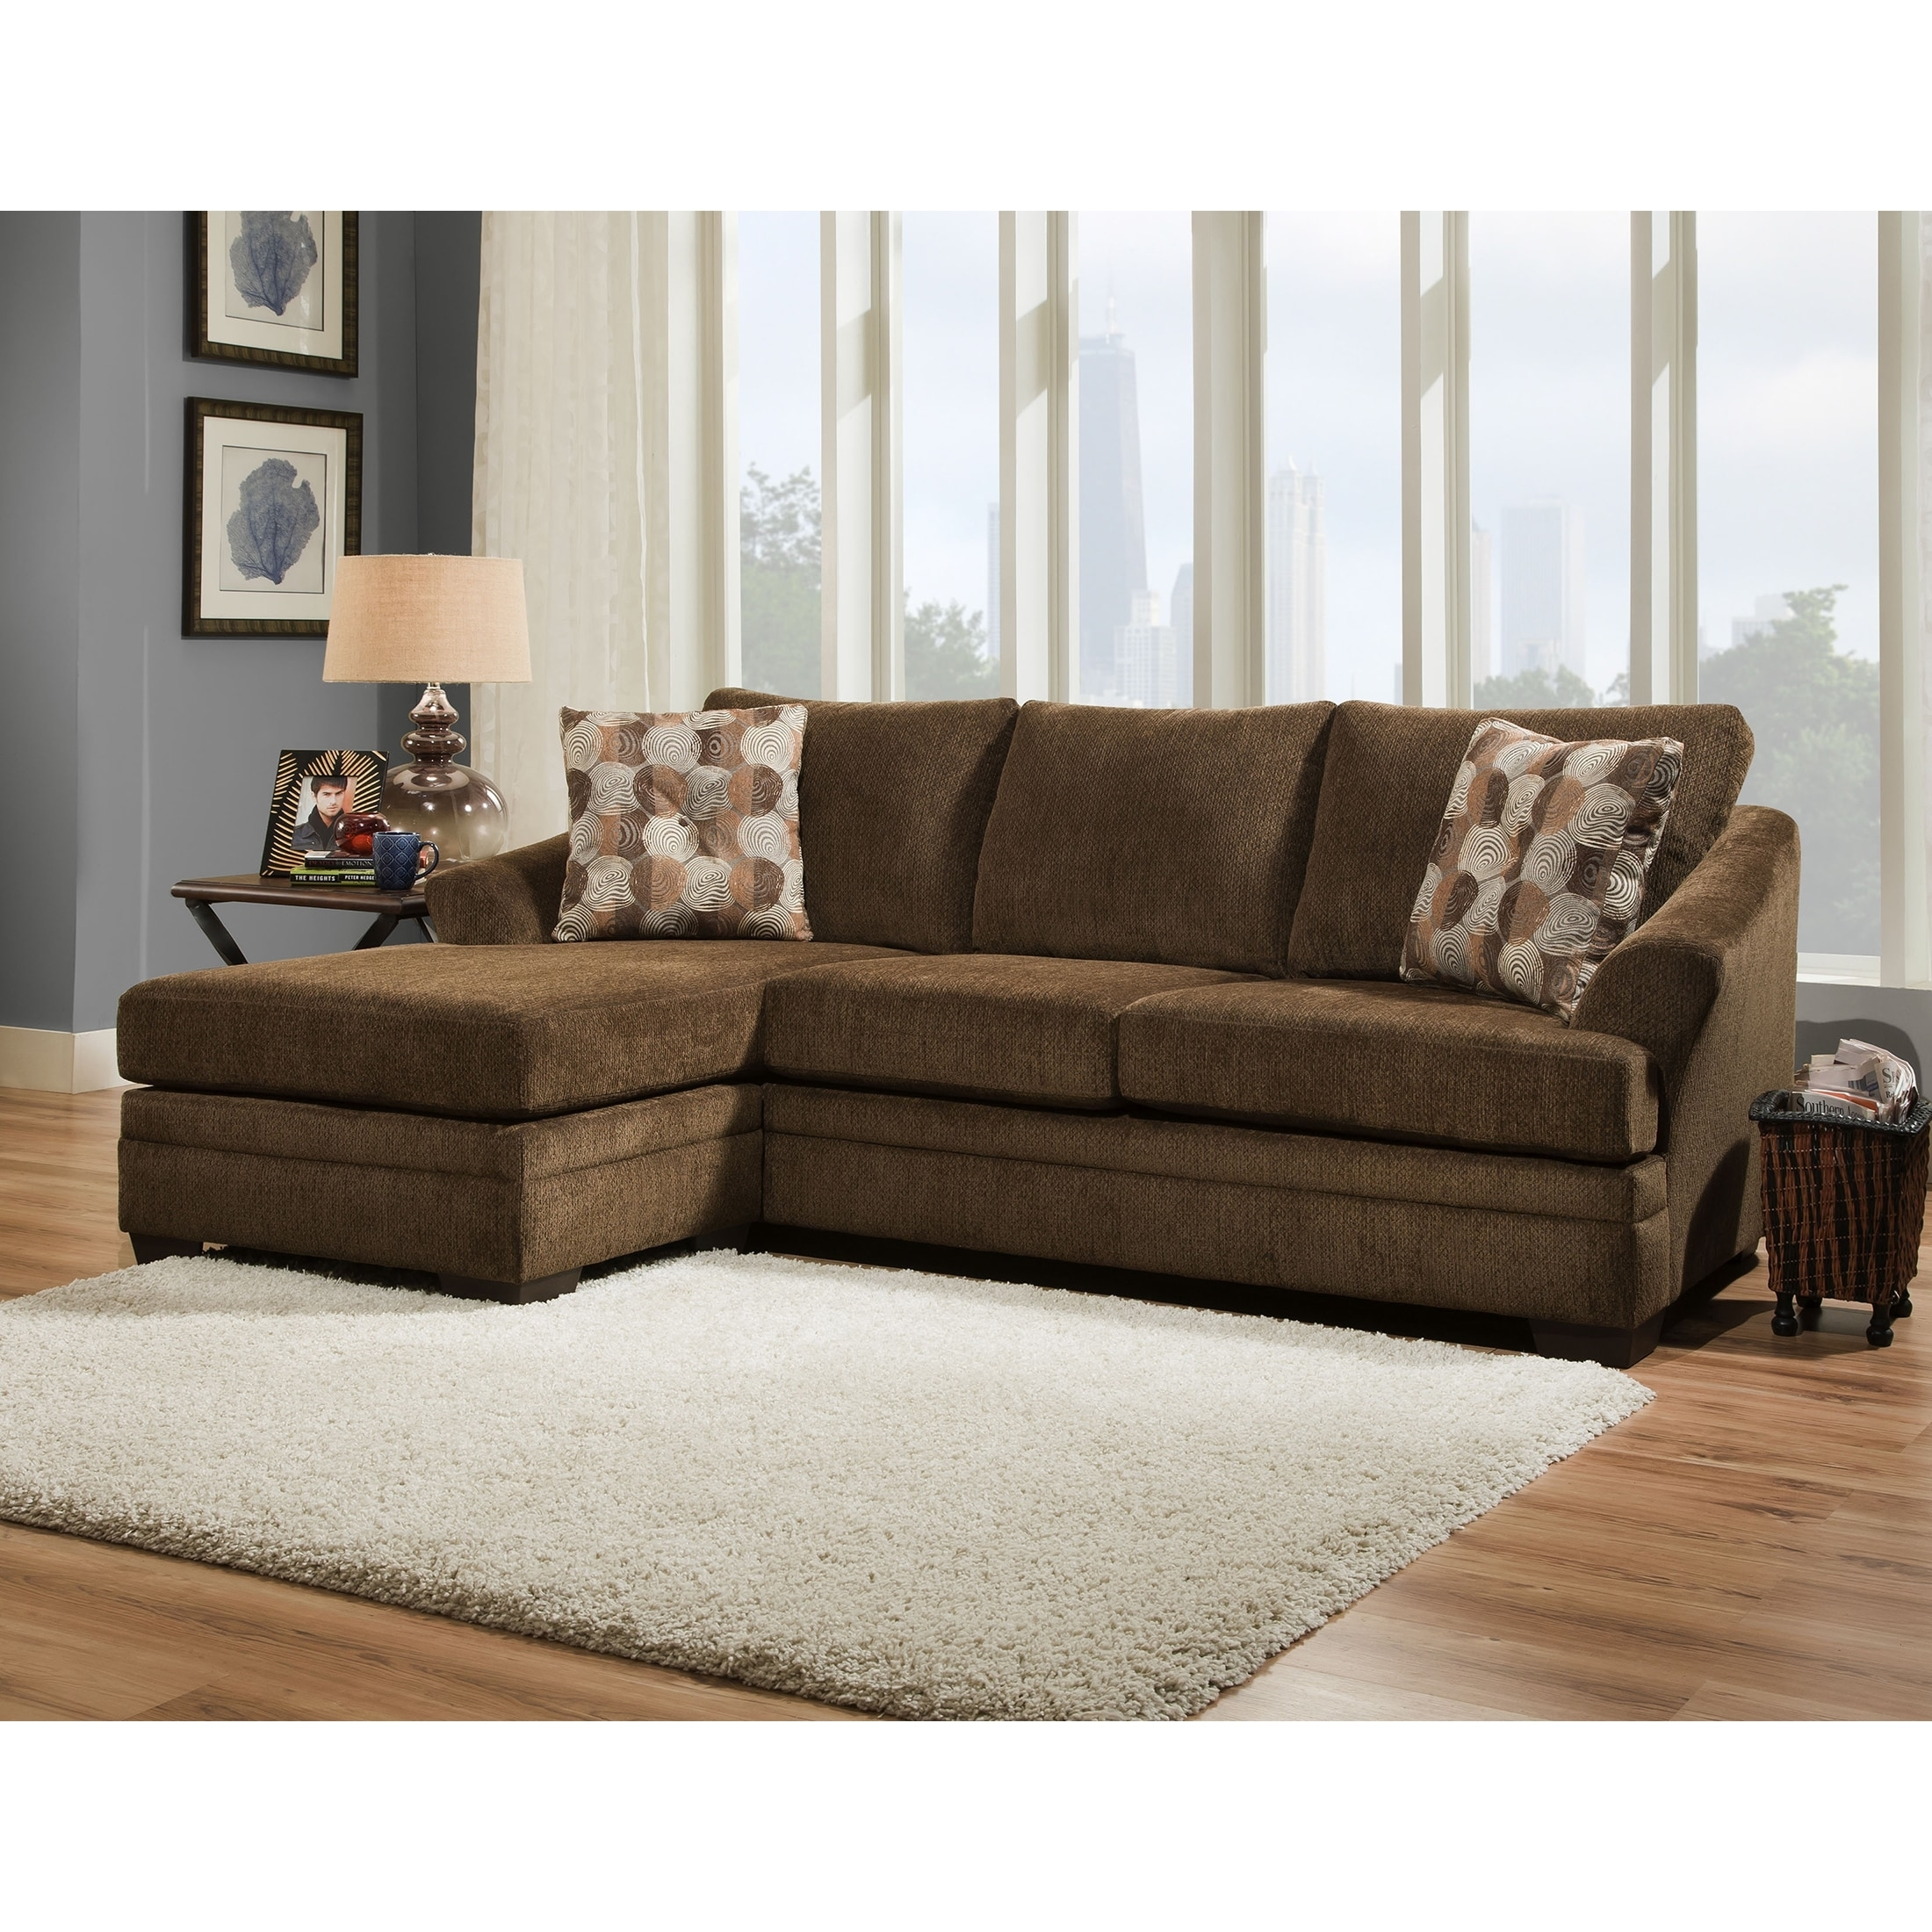 Simmons Upholstery Albany Sofa Chaise - Free Shipping Today inside Simmons Chaise Sofas (Image 9 of 10)